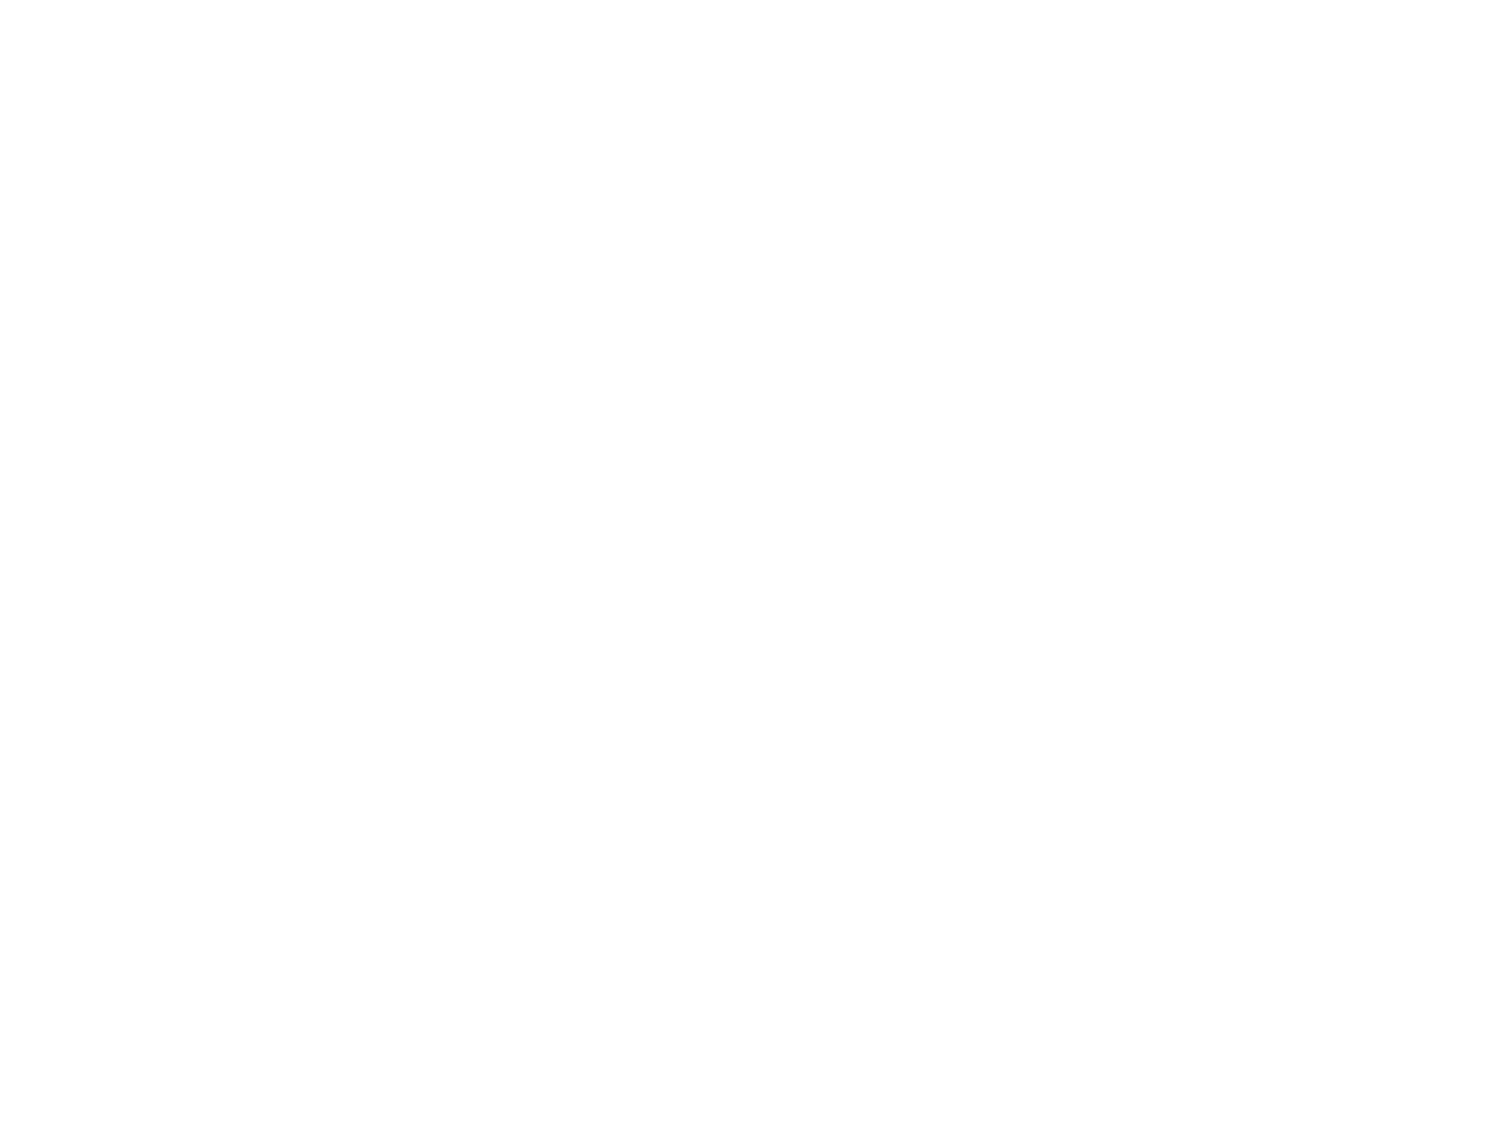 Ink Love and Paper